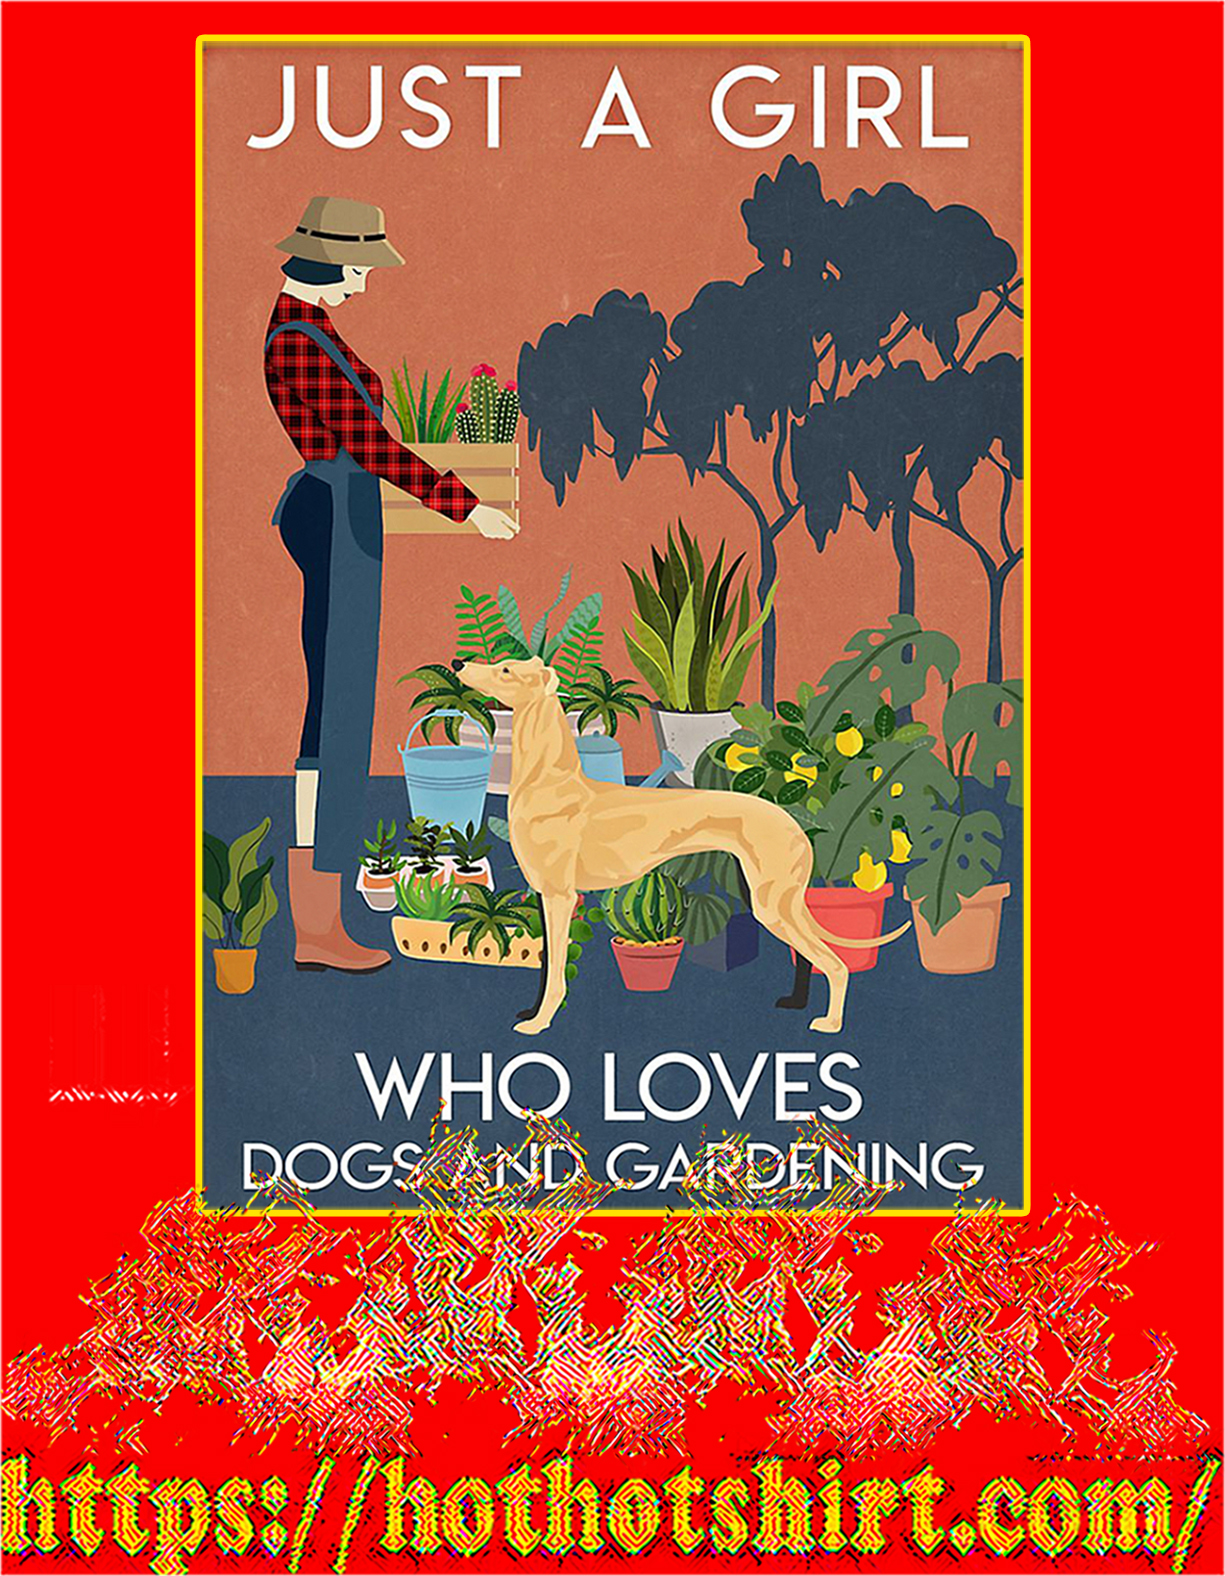 Greyhound Just a girl who loves dogs and gardening poster - A4